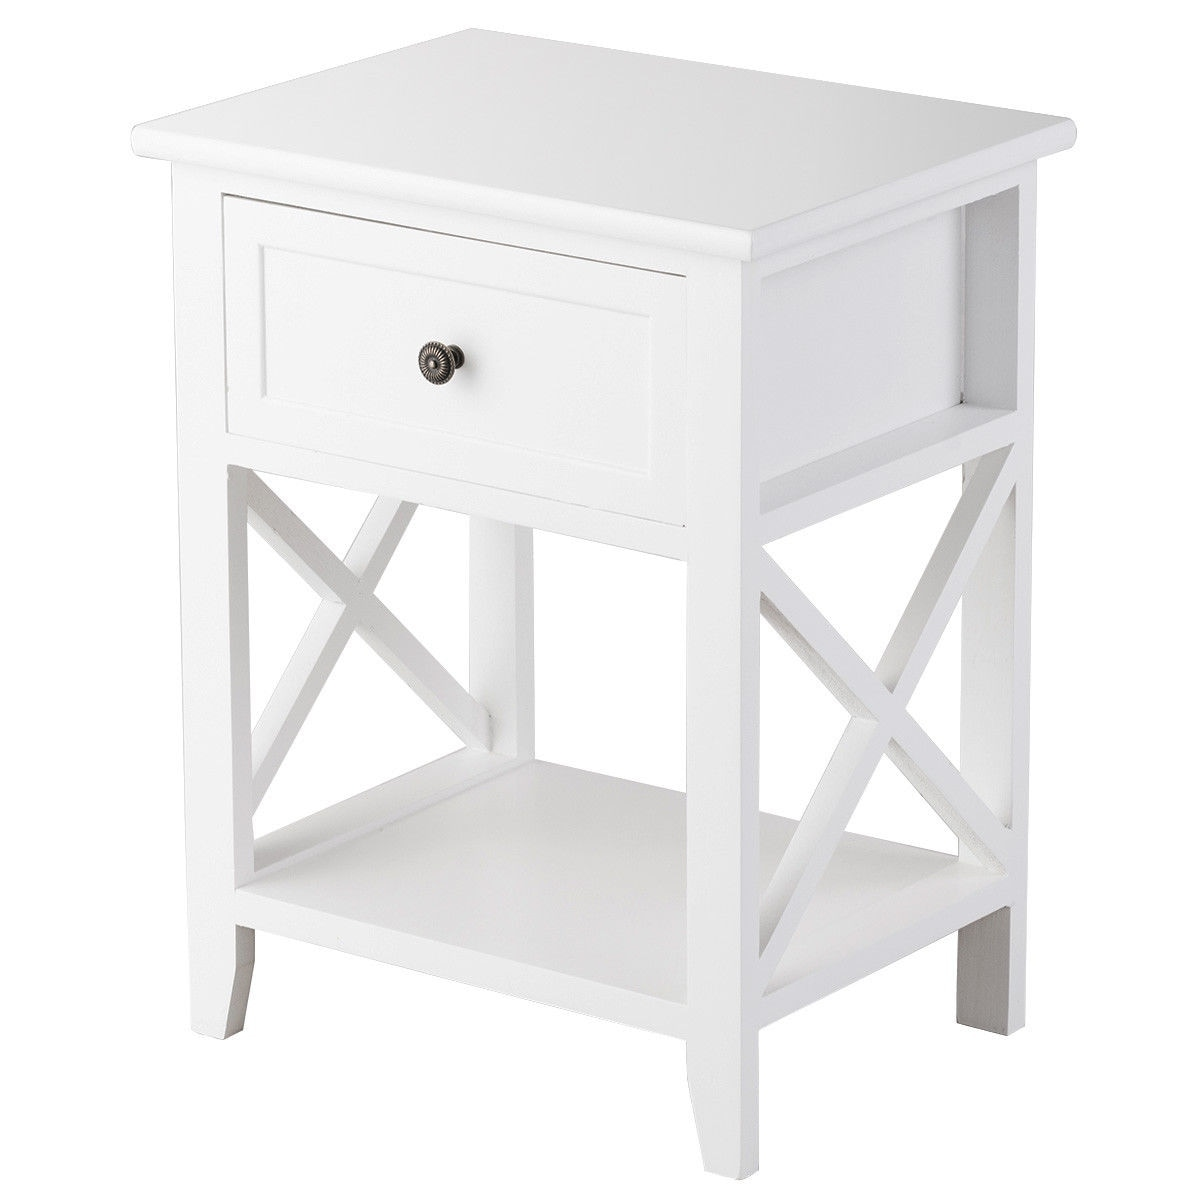 uk availability b93cc 58b2d Costway End Bedside Table Nightstand Drawer Storage Room Decor W/Bottom  Shelf White